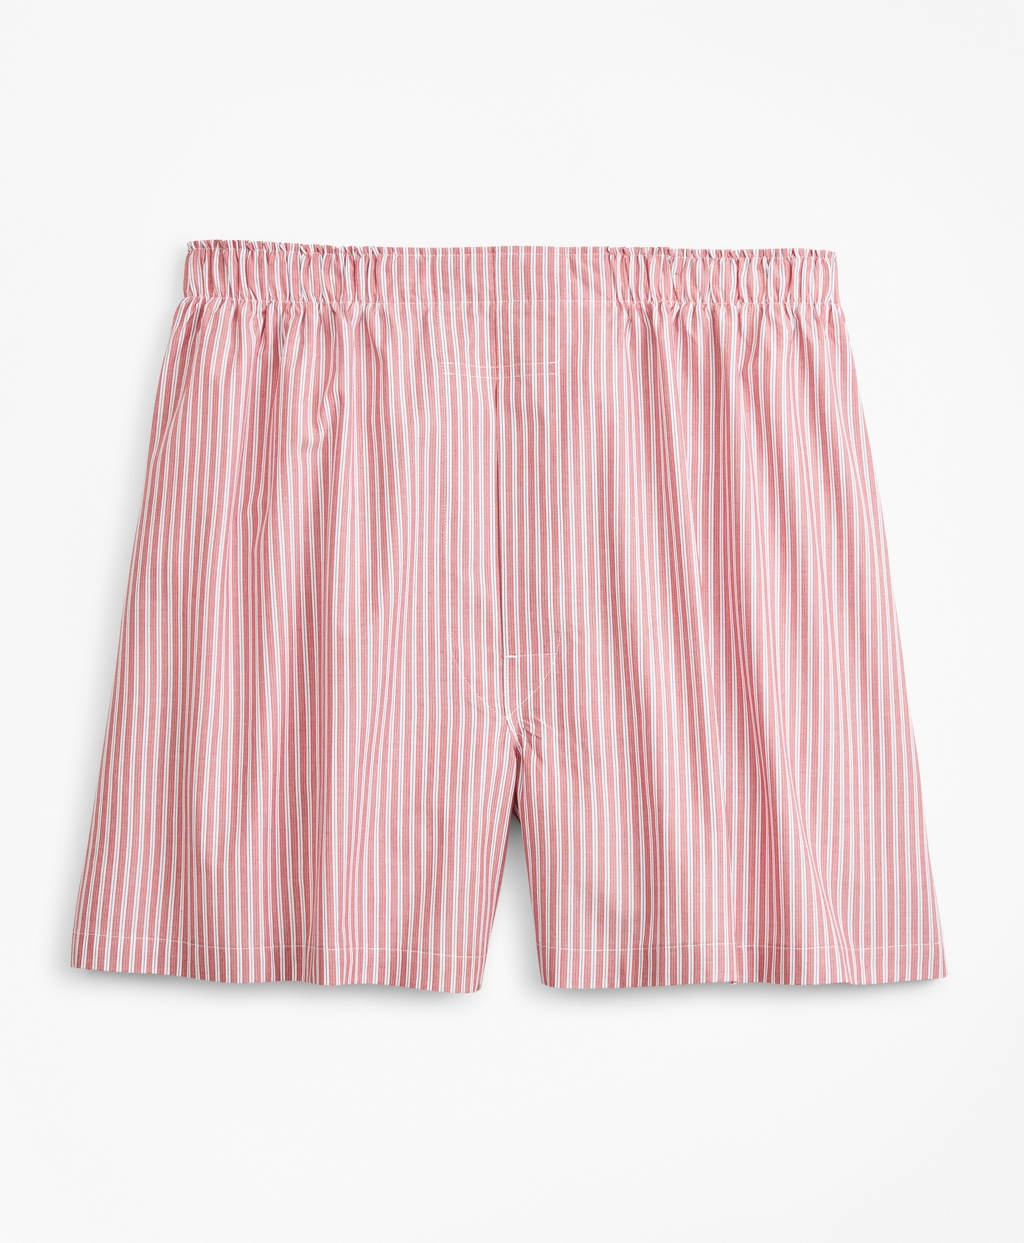 1940s Men's Underwear: Briefs, Boxers, Unions, & Socks Brooks Brothers Mens Traditional Fit Stripe Boxers $25.00 AT vintagedancer.com